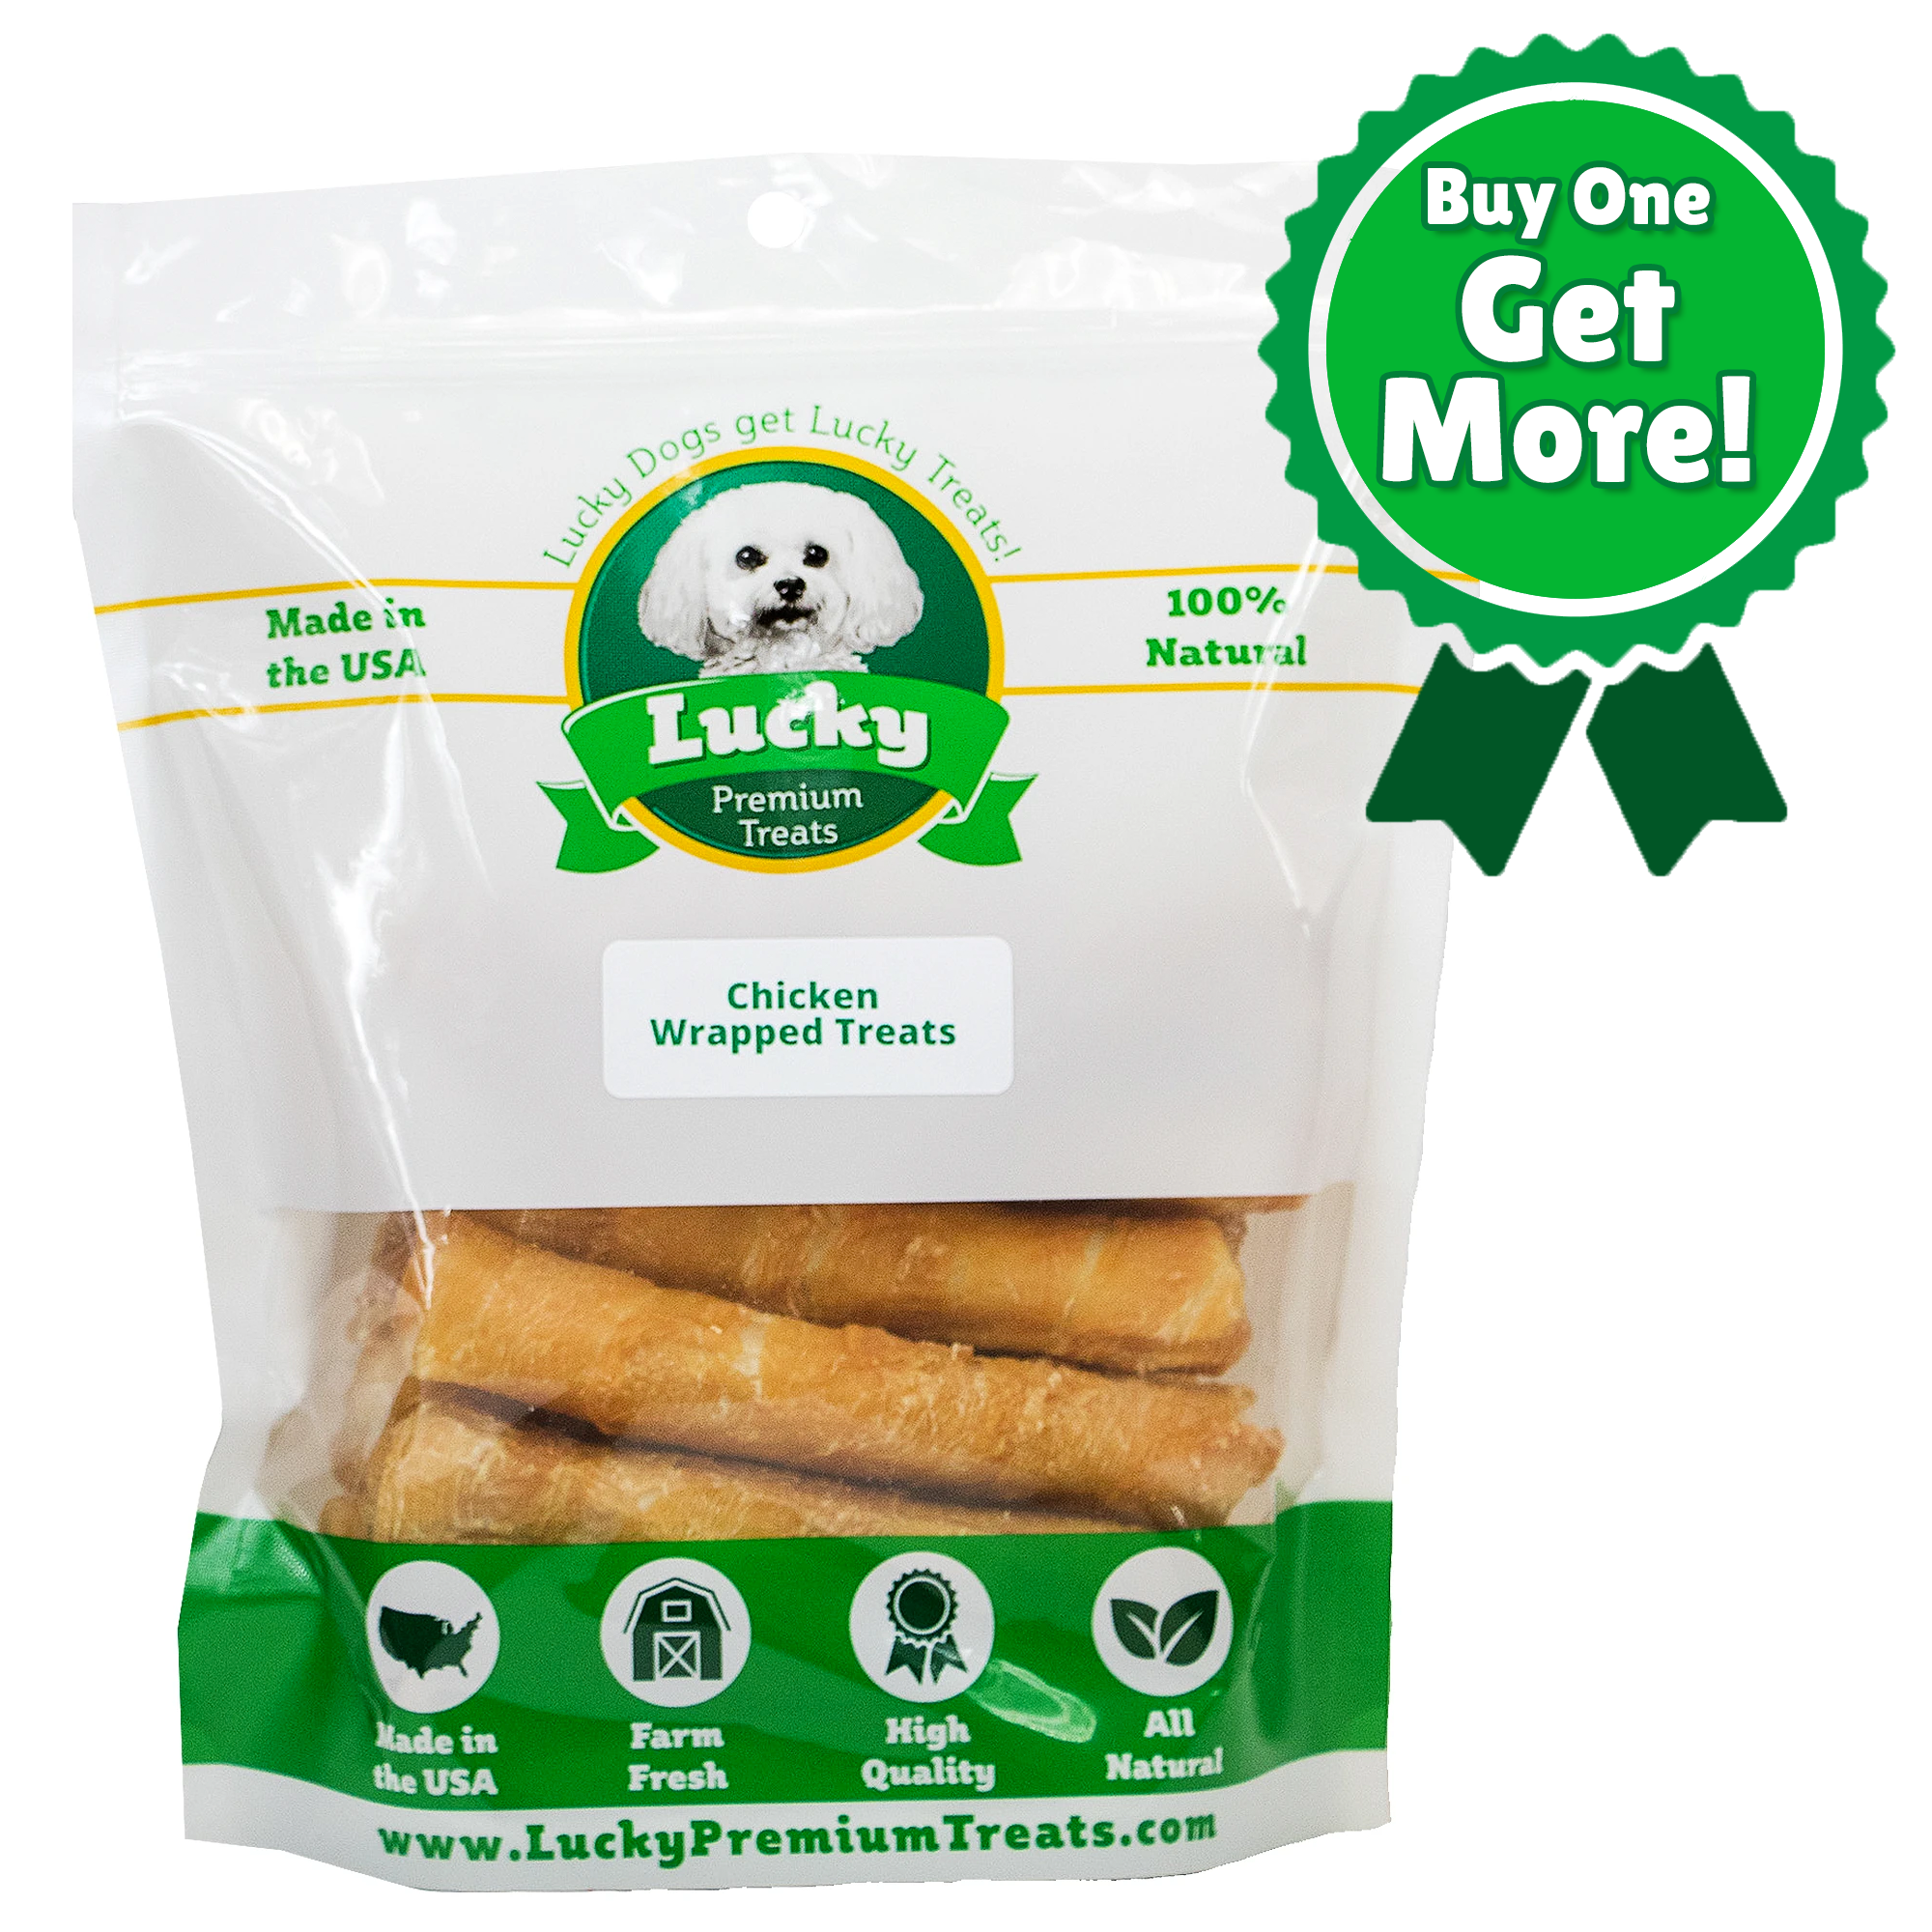 Chicken Wrapped Rawhide Treats for Medium Dogs - Buy 24 Get 5 FREE! (29 Total Treats!)